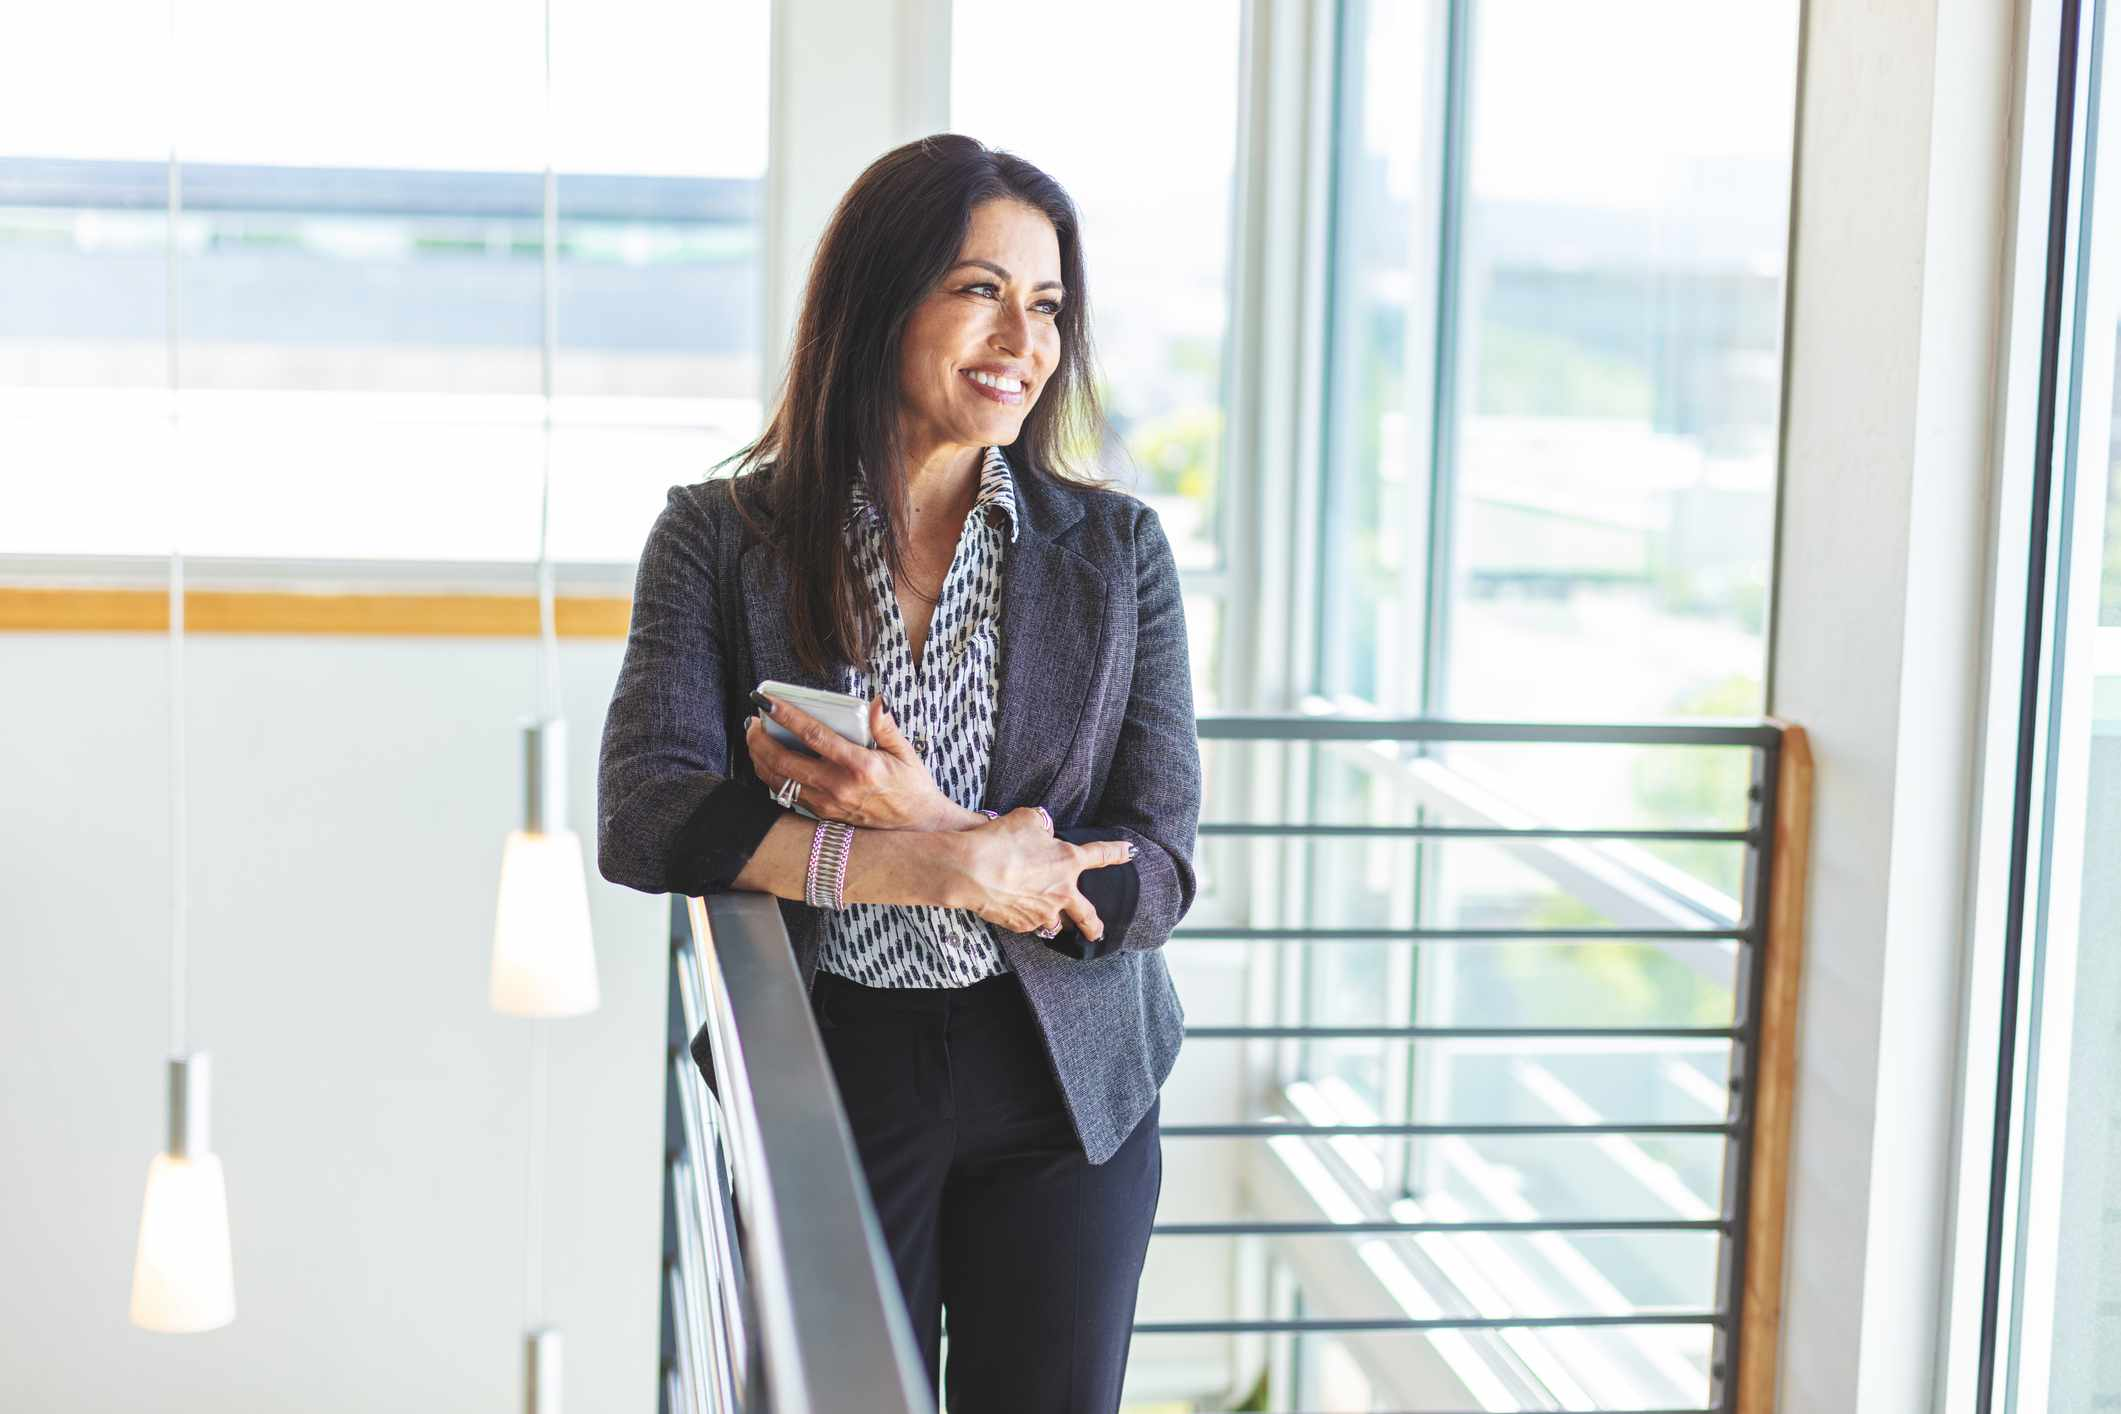 Hispanic Businesswoman Mature Adult Conducting Business in Corporate Office Space in Western Colorado